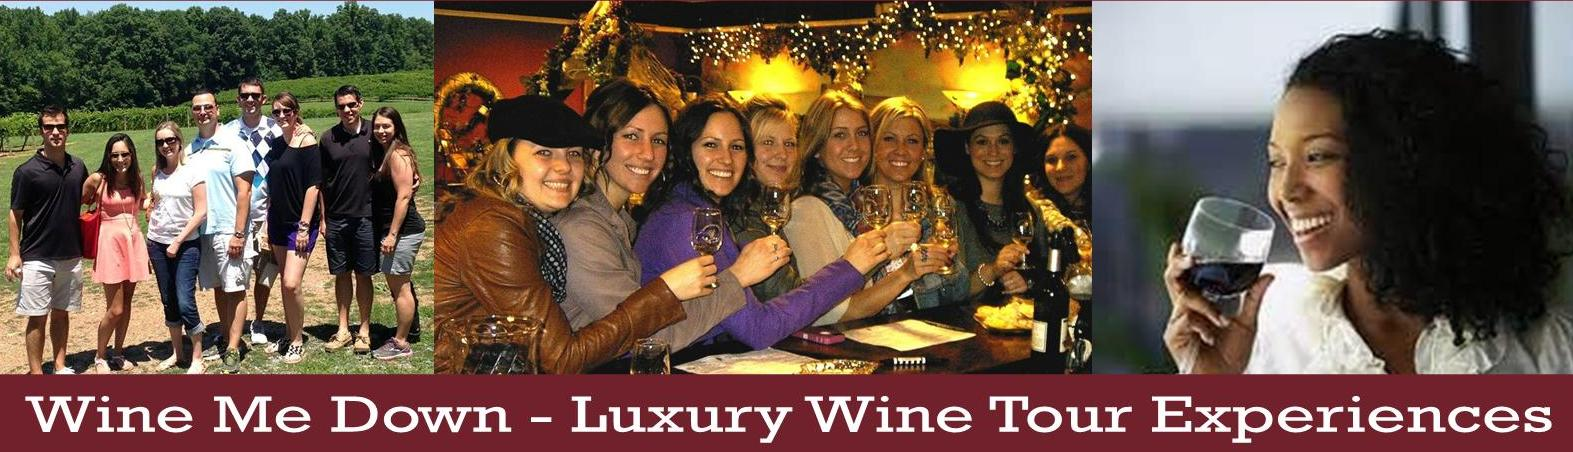 Wine Me Down - Luxury Wine Tasting Tour Experiences